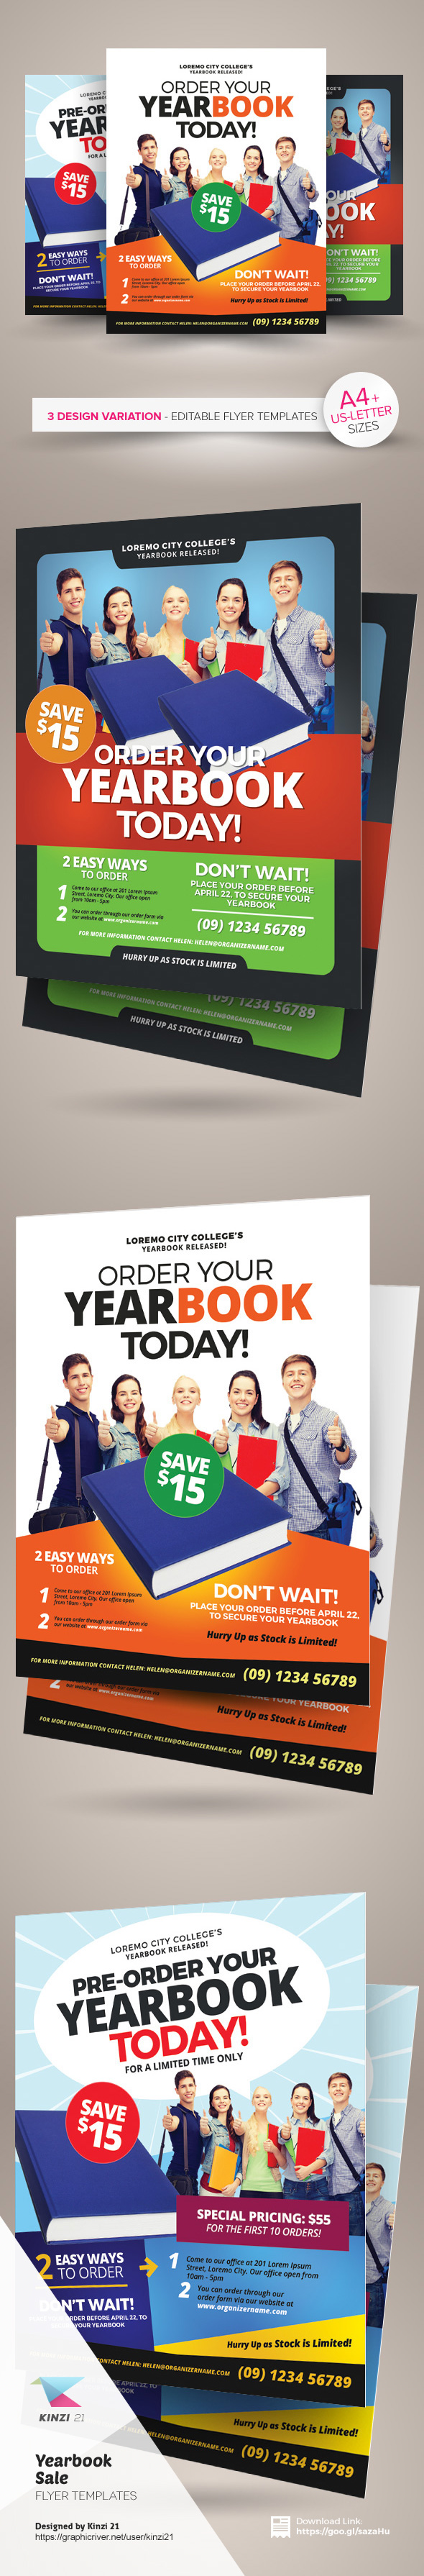 yearbook flyer templates on behance yearbook flyer templates are fully editable design templates created for on graphic river more info of the templates and how to get the